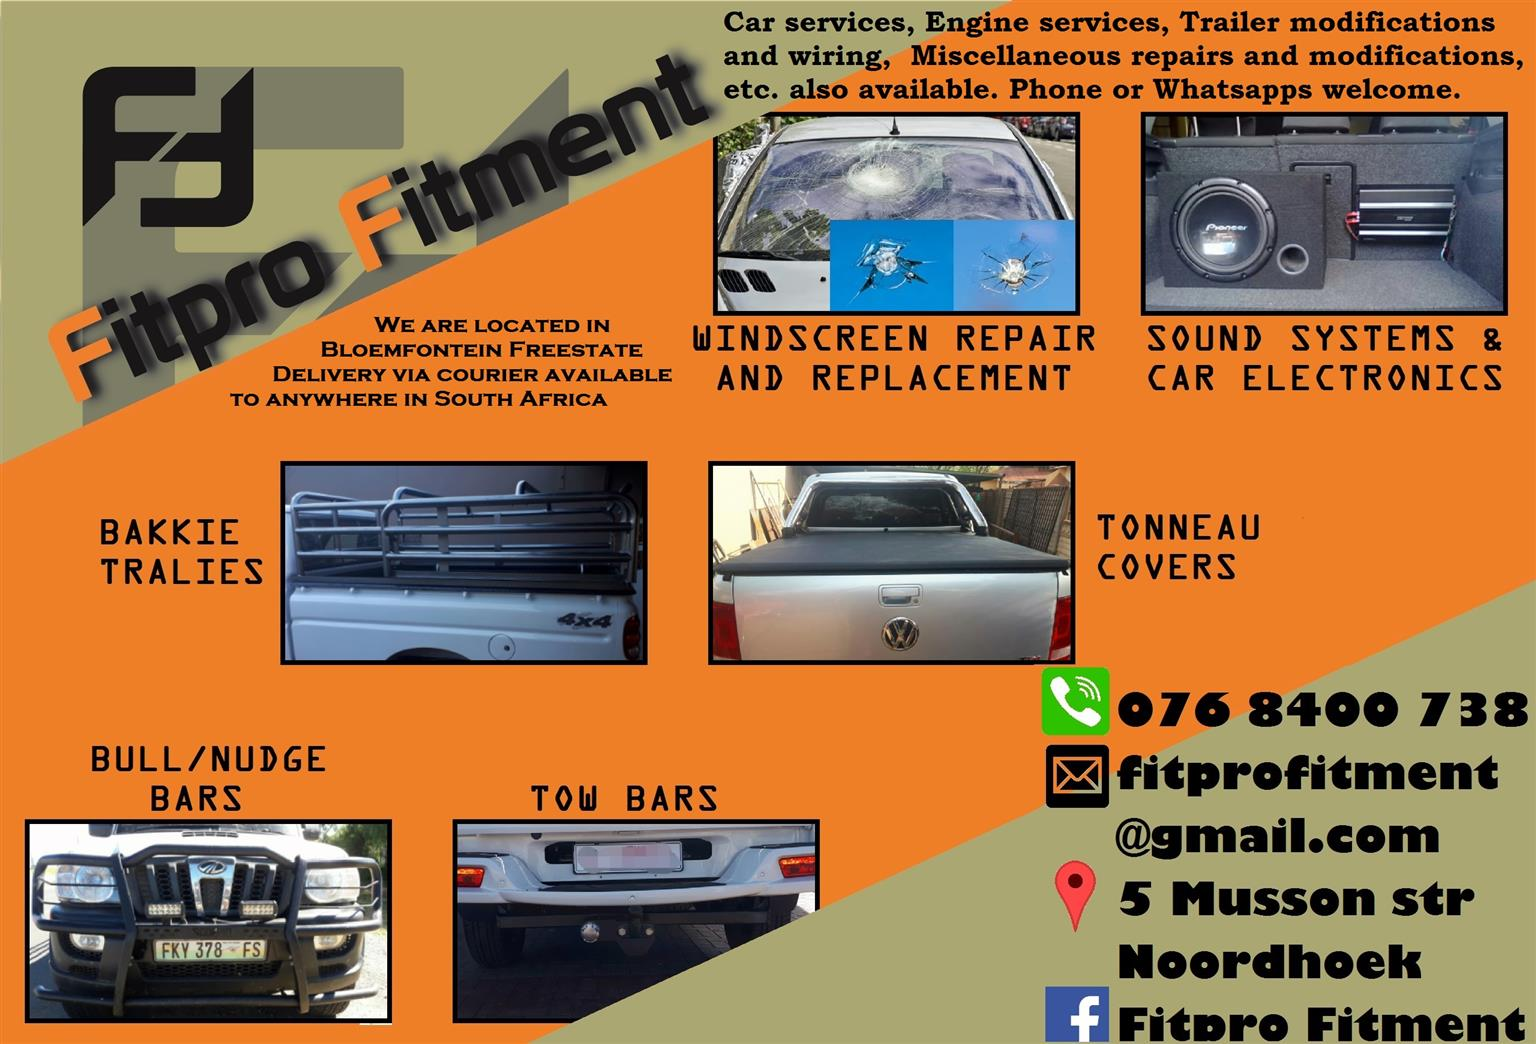 Fitpro Vehicle Accessories and repairs